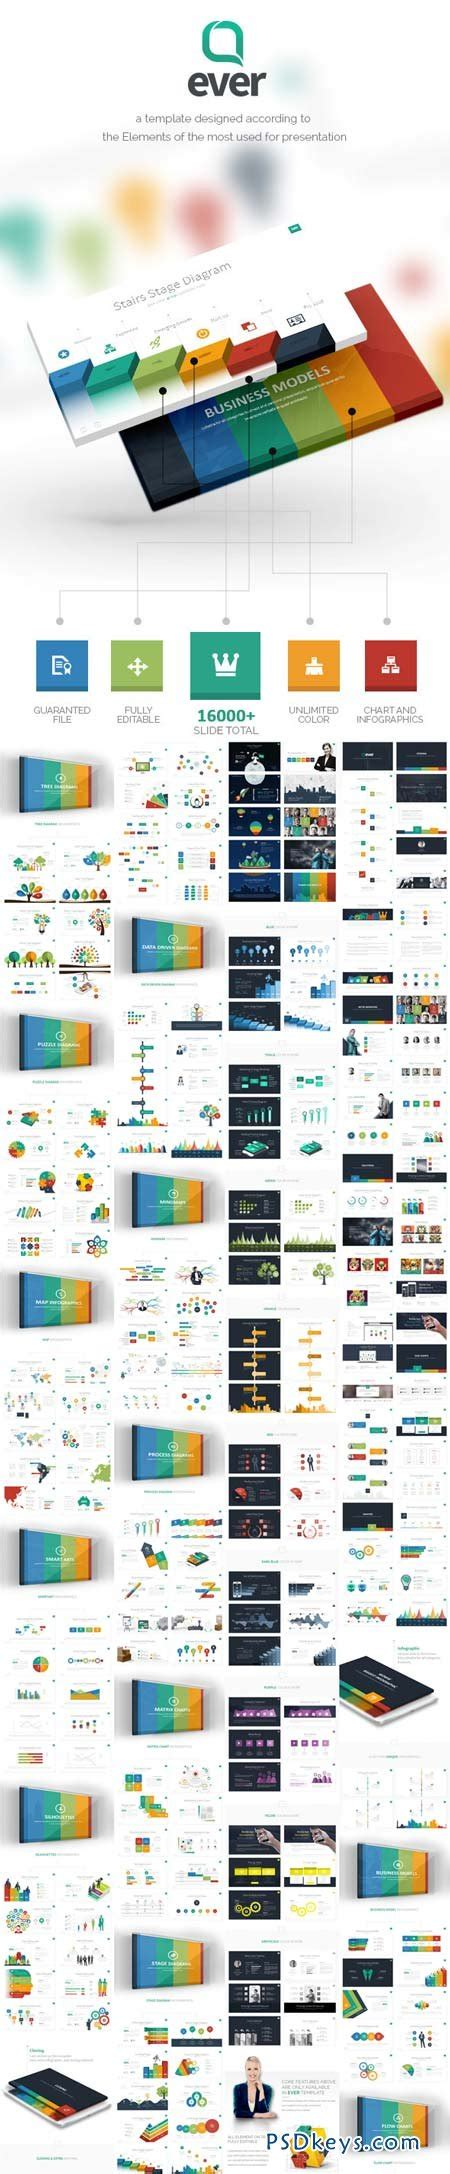 powerpoint themes rar powerpoint templates free download rar images powerpoint